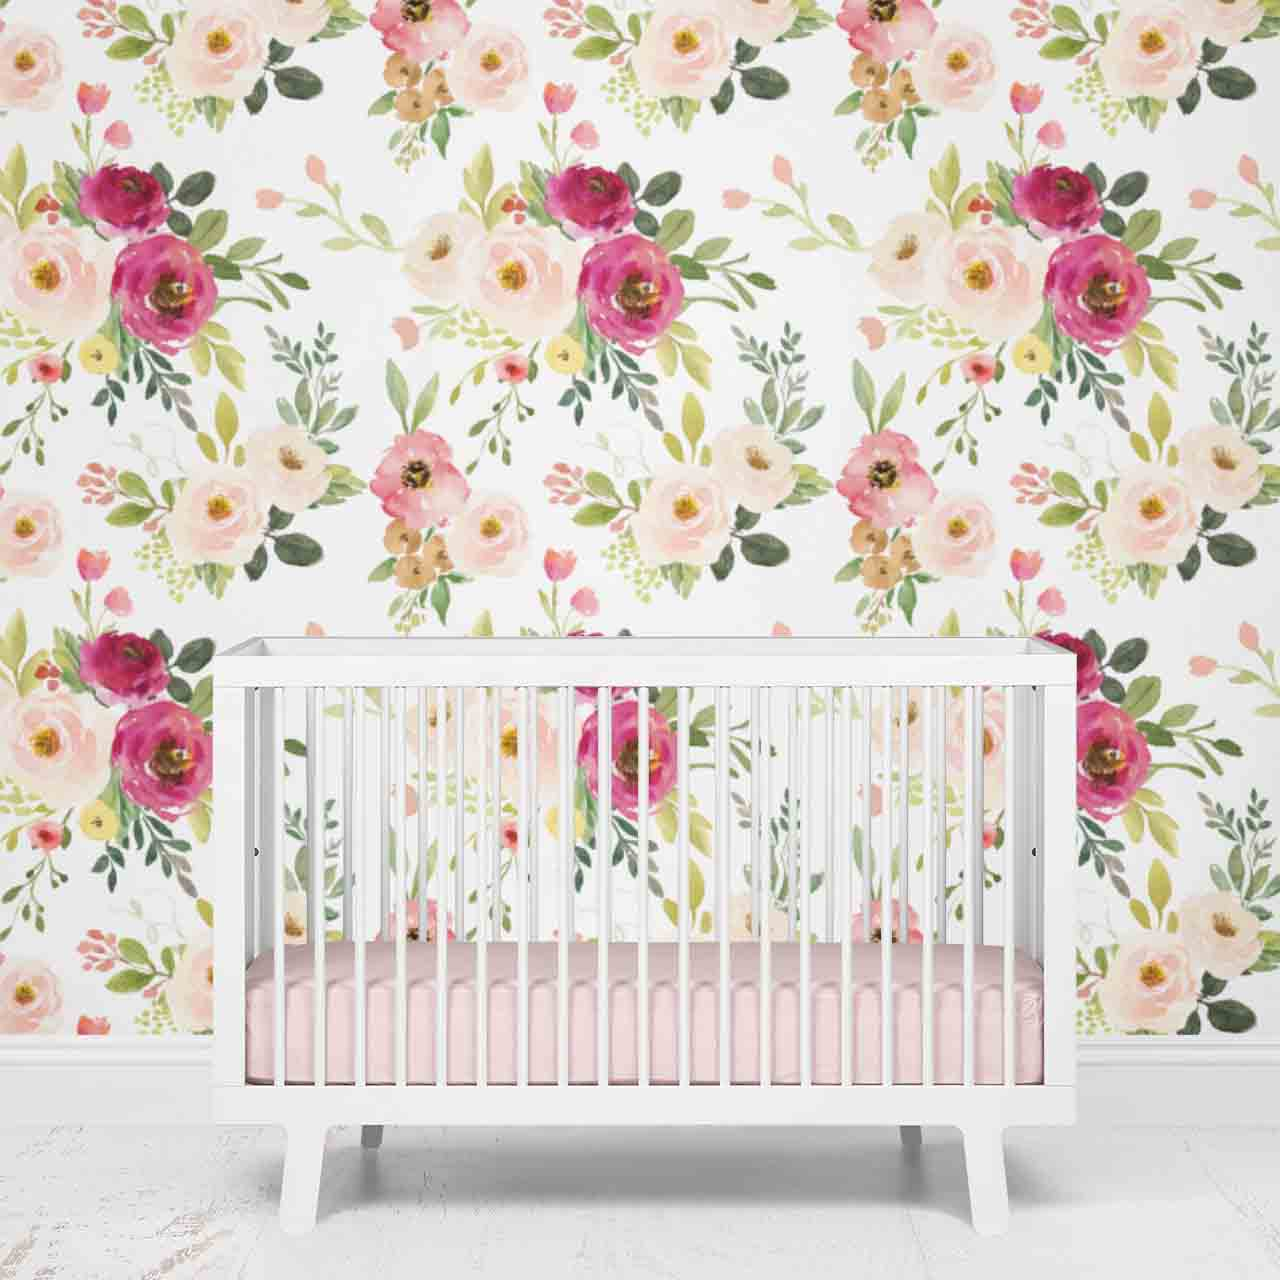 Frannys Farmhouse Floral Nursery Removable Wallpaper